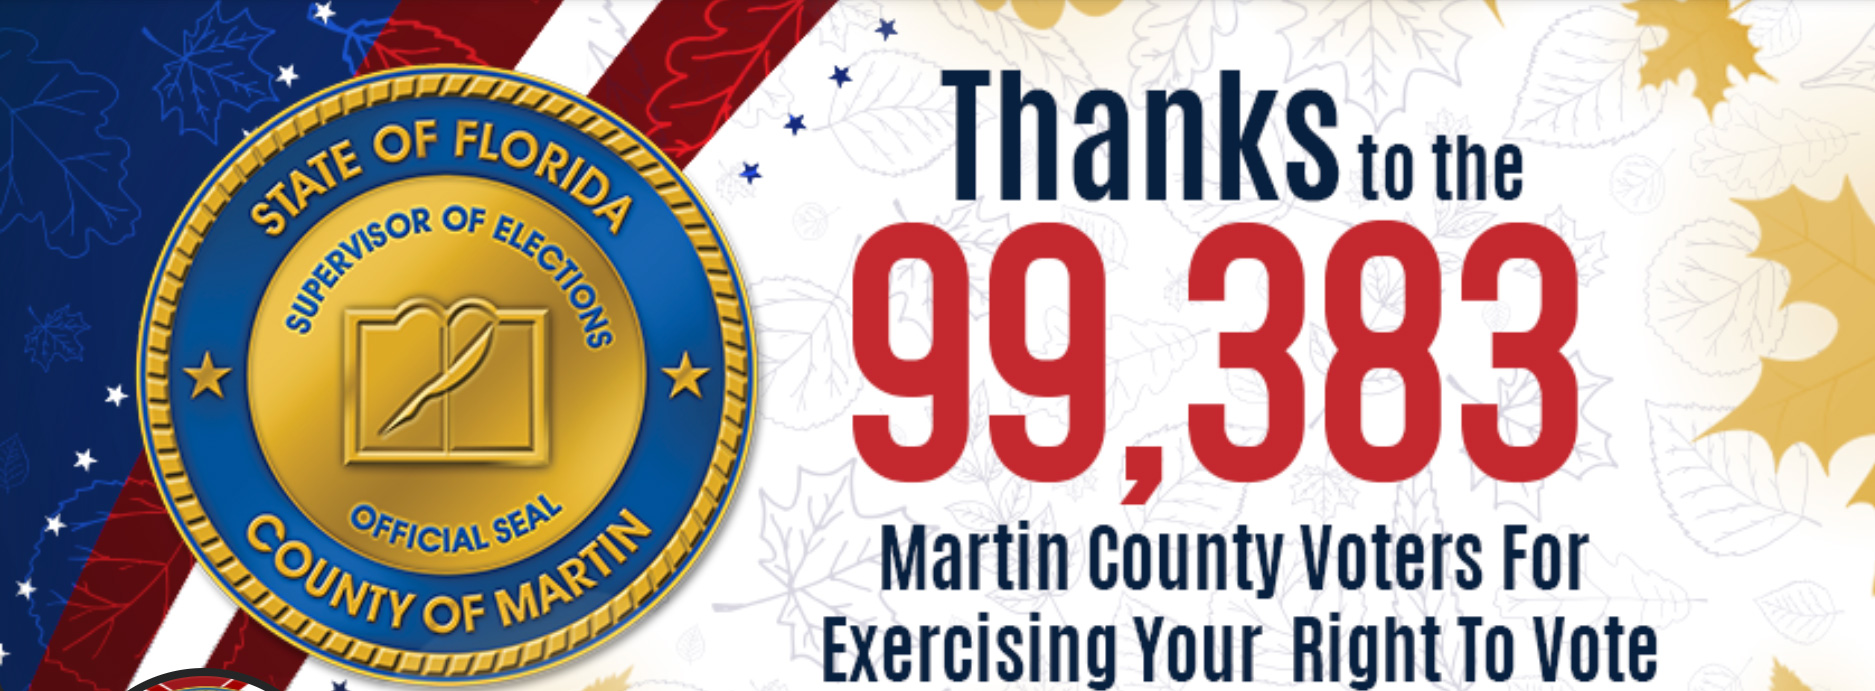 Thanks to the 99.383